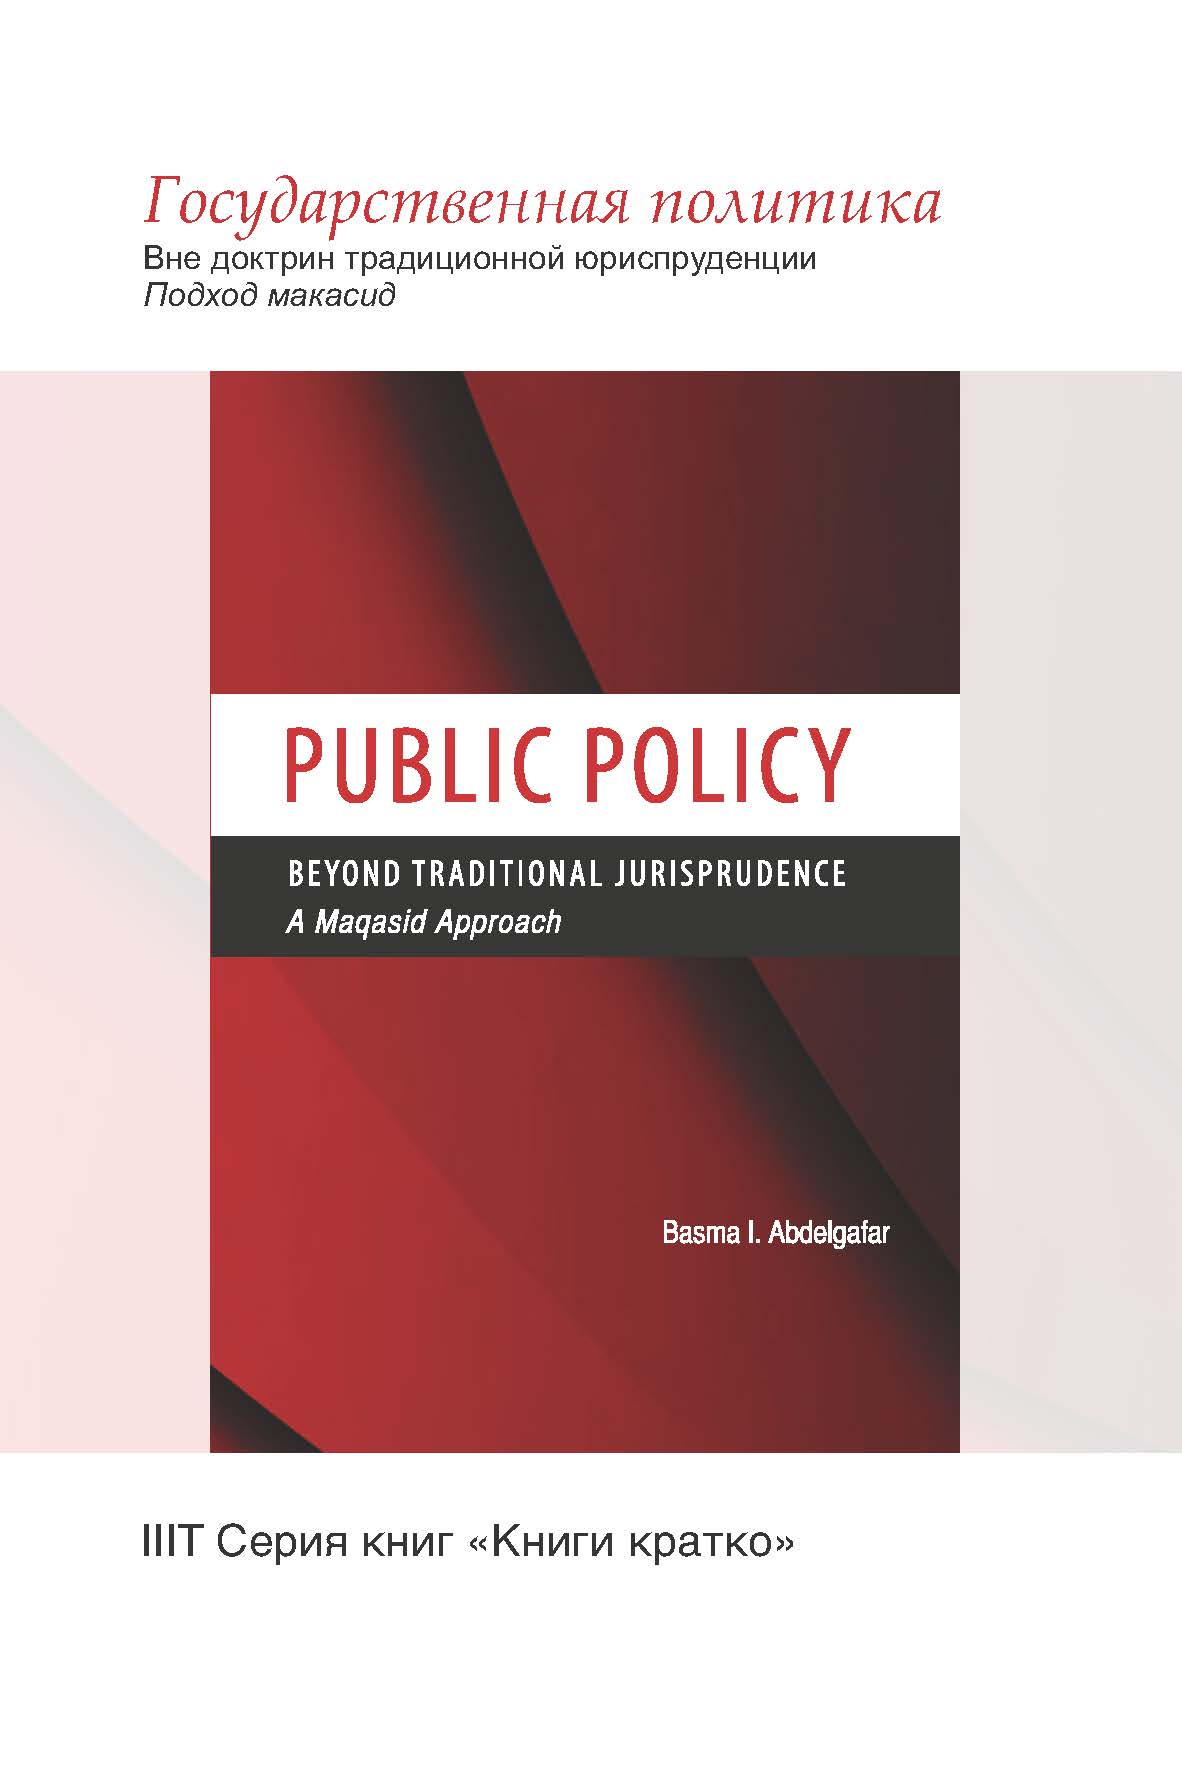 Public Policy Beyond Traditional Jurisprudence – Russian (Books-in-Brief)